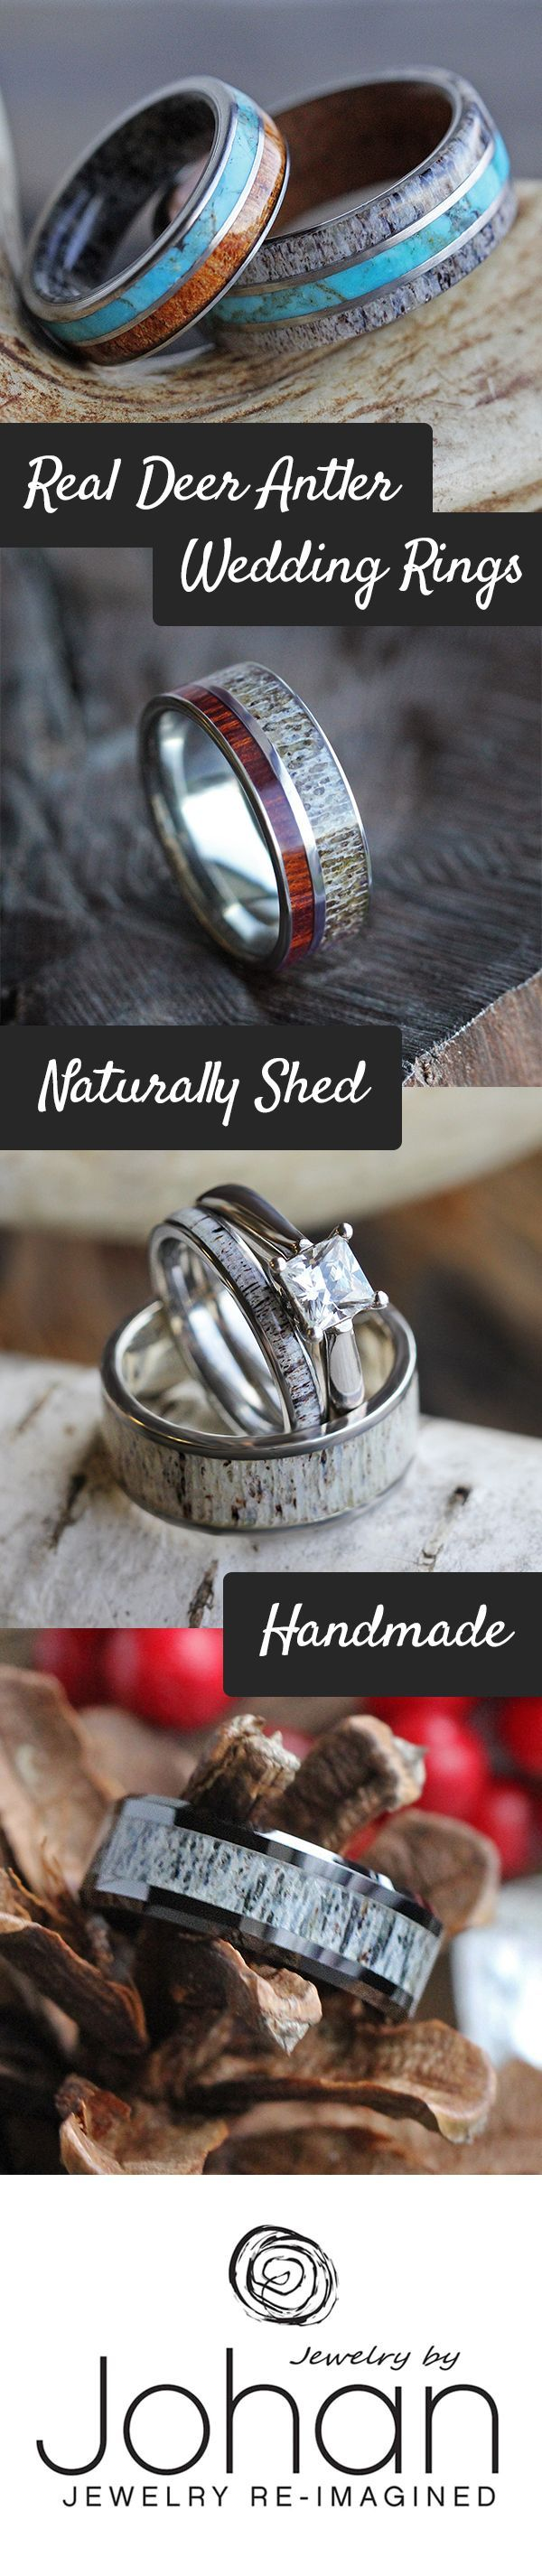 Natural deer antler wedding rings - perfect for  outdoor enthusiasts and hunters!